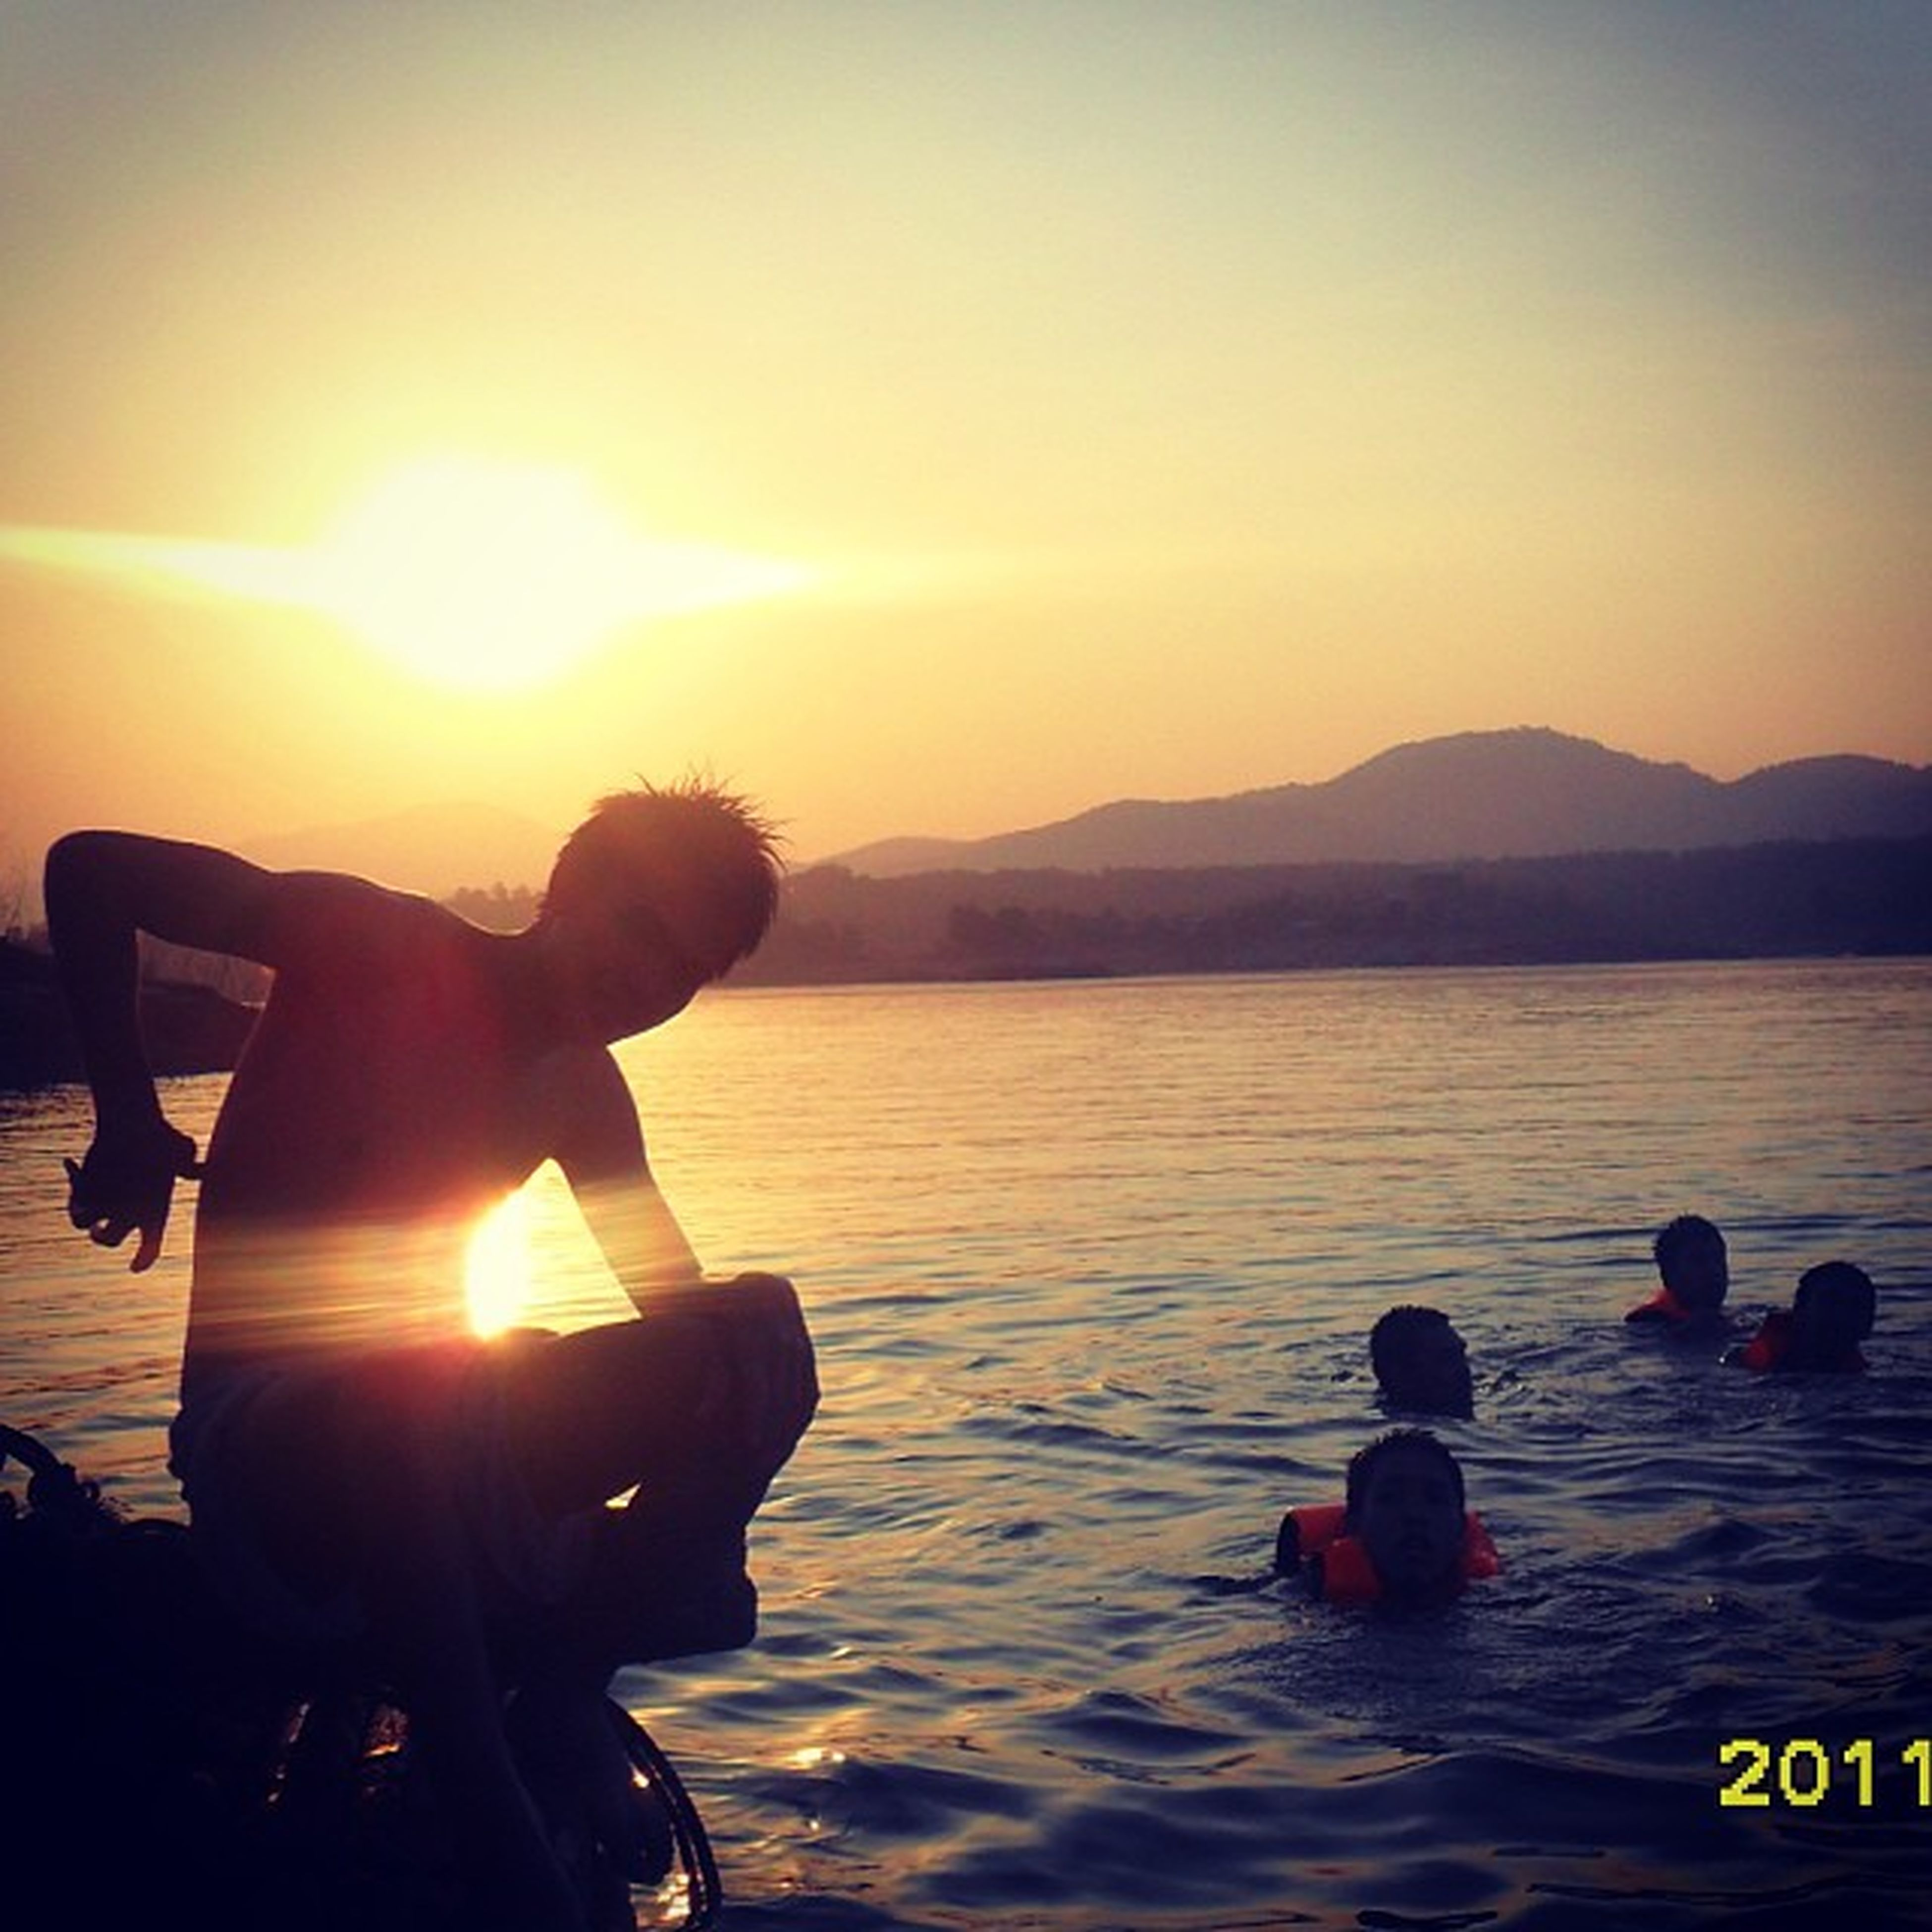 sunset, water, sun, lifestyles, leisure activity, sea, silhouette, beach, men, orange color, scenics, sunlight, sky, togetherness, vacations, beauty in nature, reflection, mountain